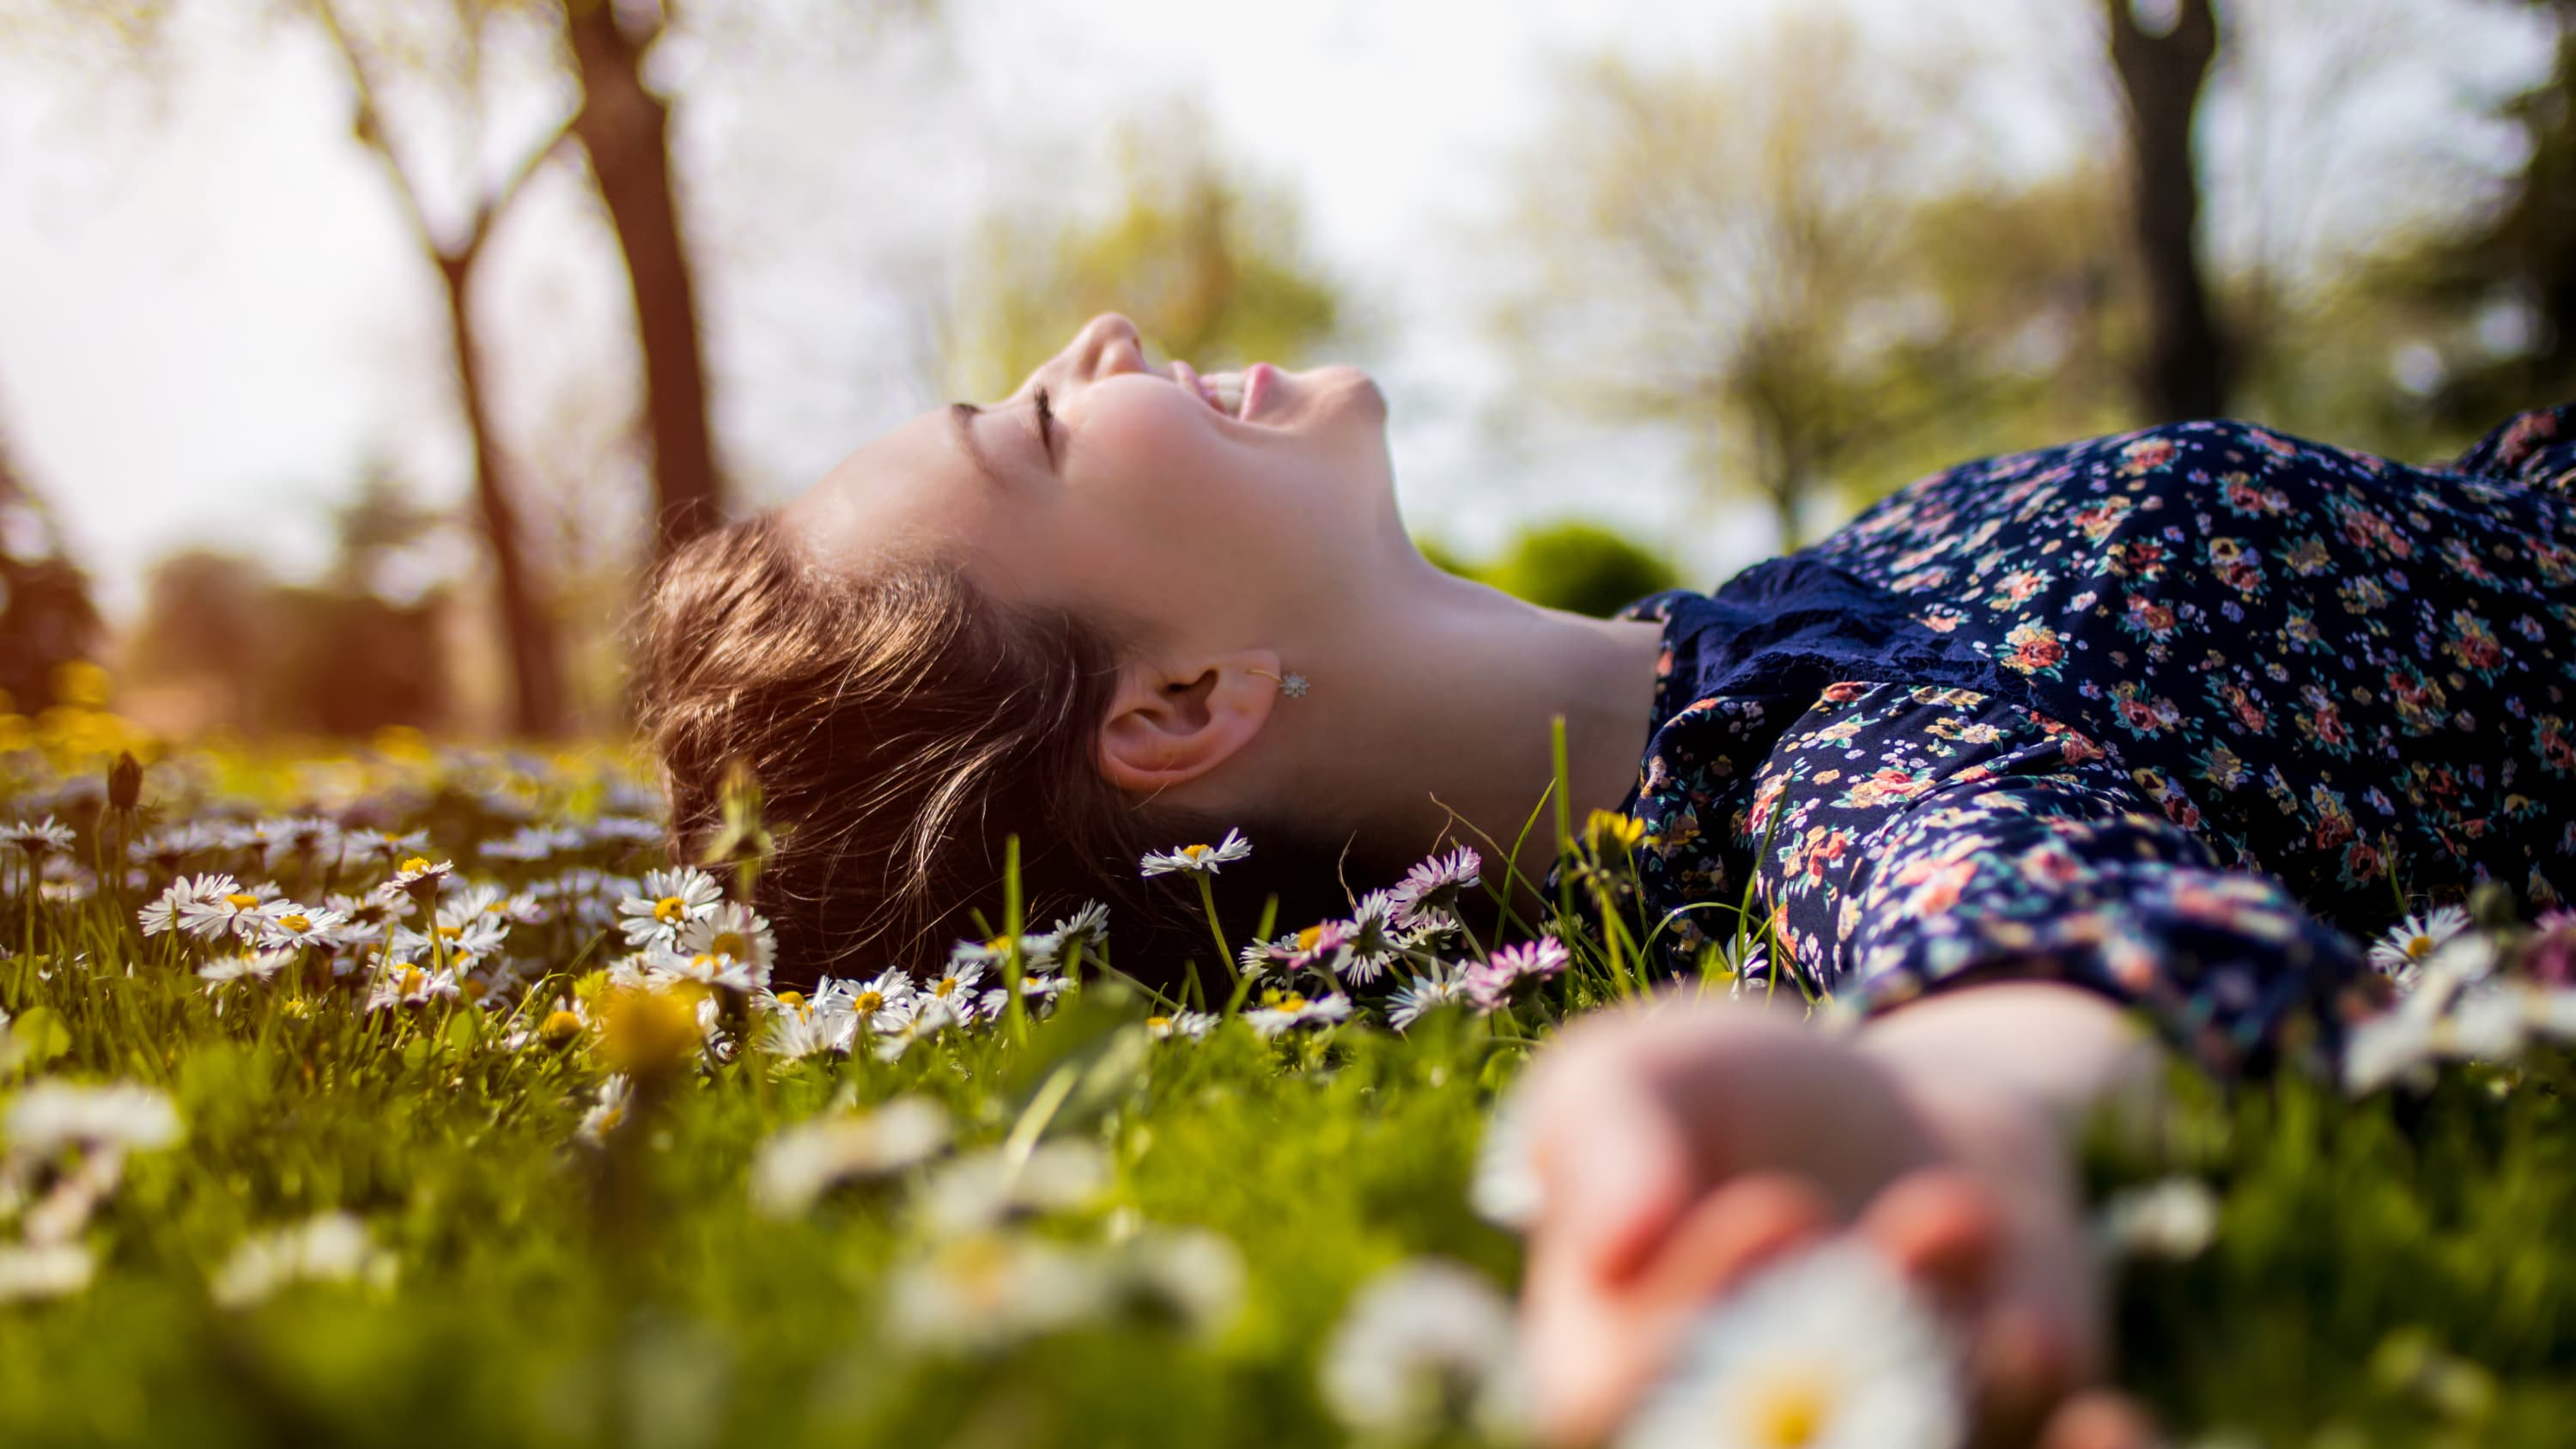 happy teenager lying in grass, possibly because of promising trial results for the Pfizer-BioNTech vaccine in adolescents